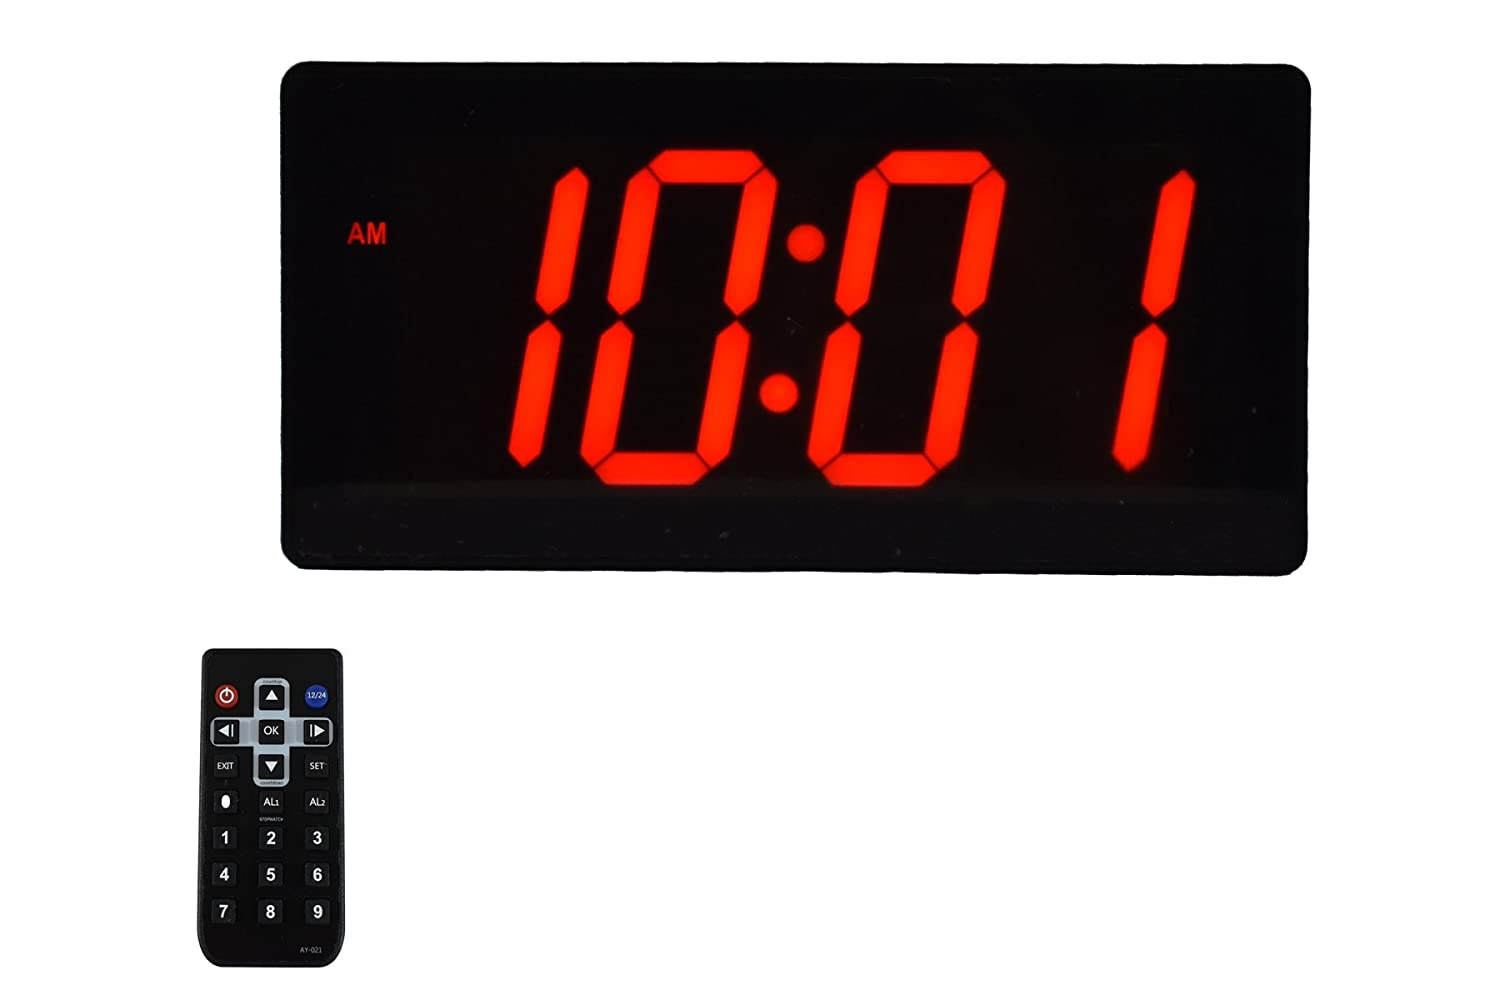 Large Digital Wall Clock - Best Alarm Clock with Remote Control - 4